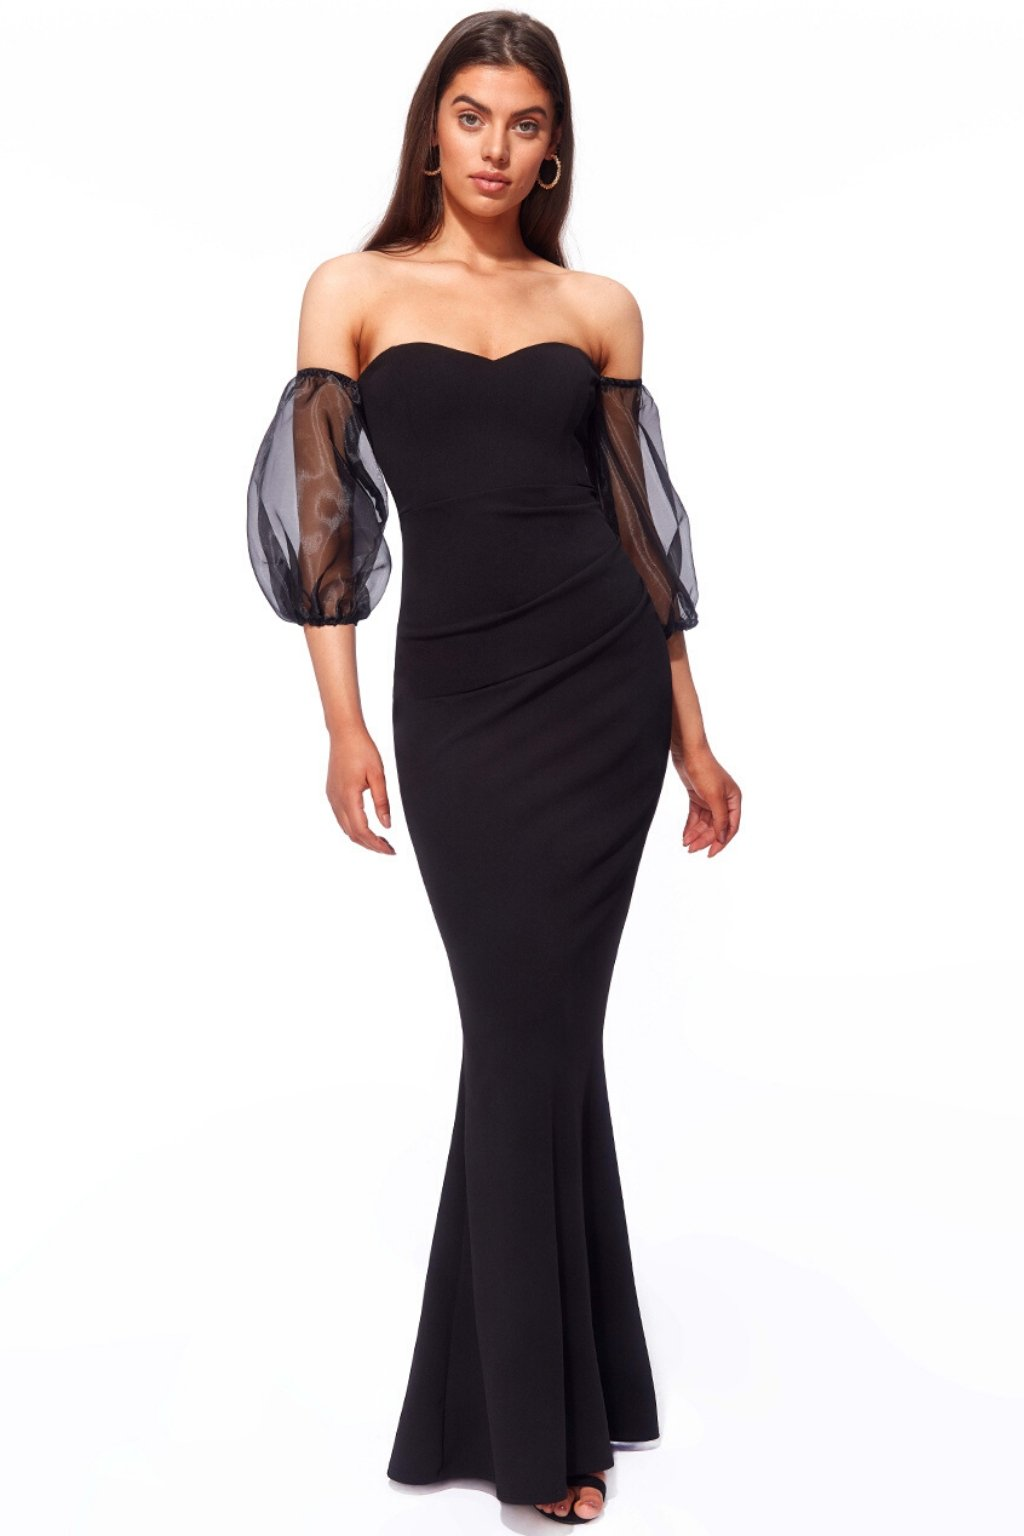 Black bodycon formal dress with tulle sleeves